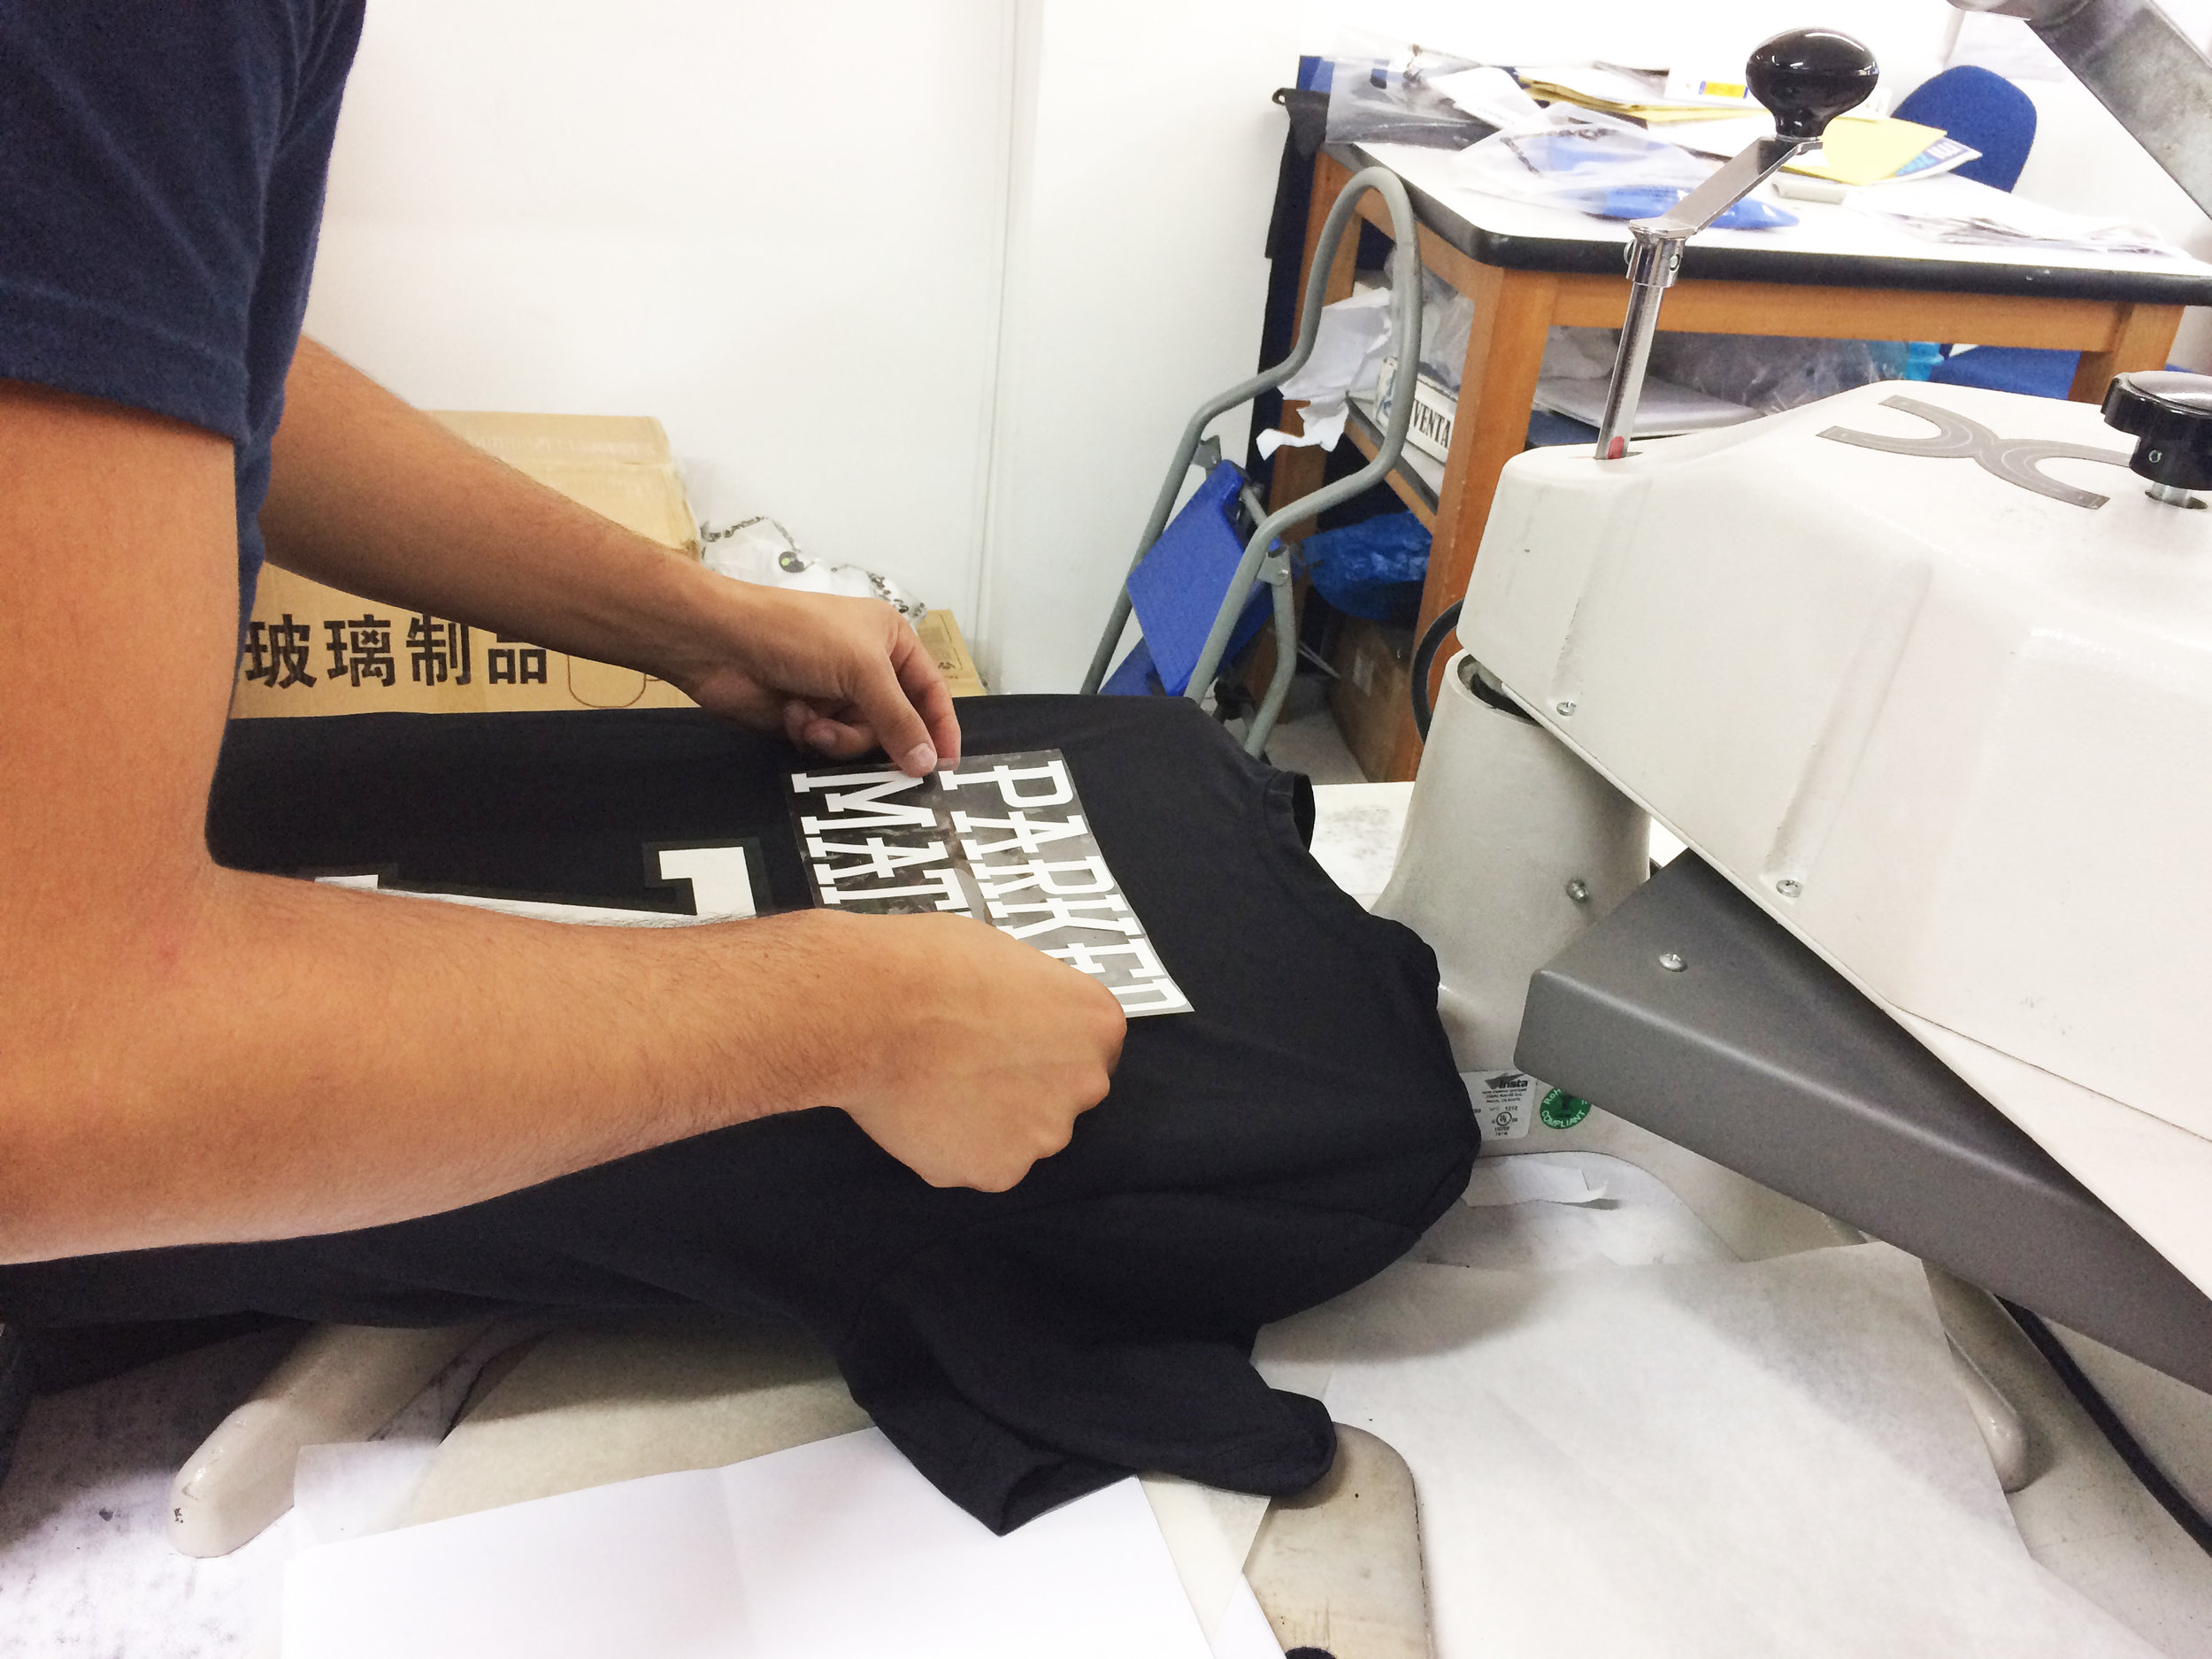 ParkerMather FC-T-Shirt-Production2.jpg